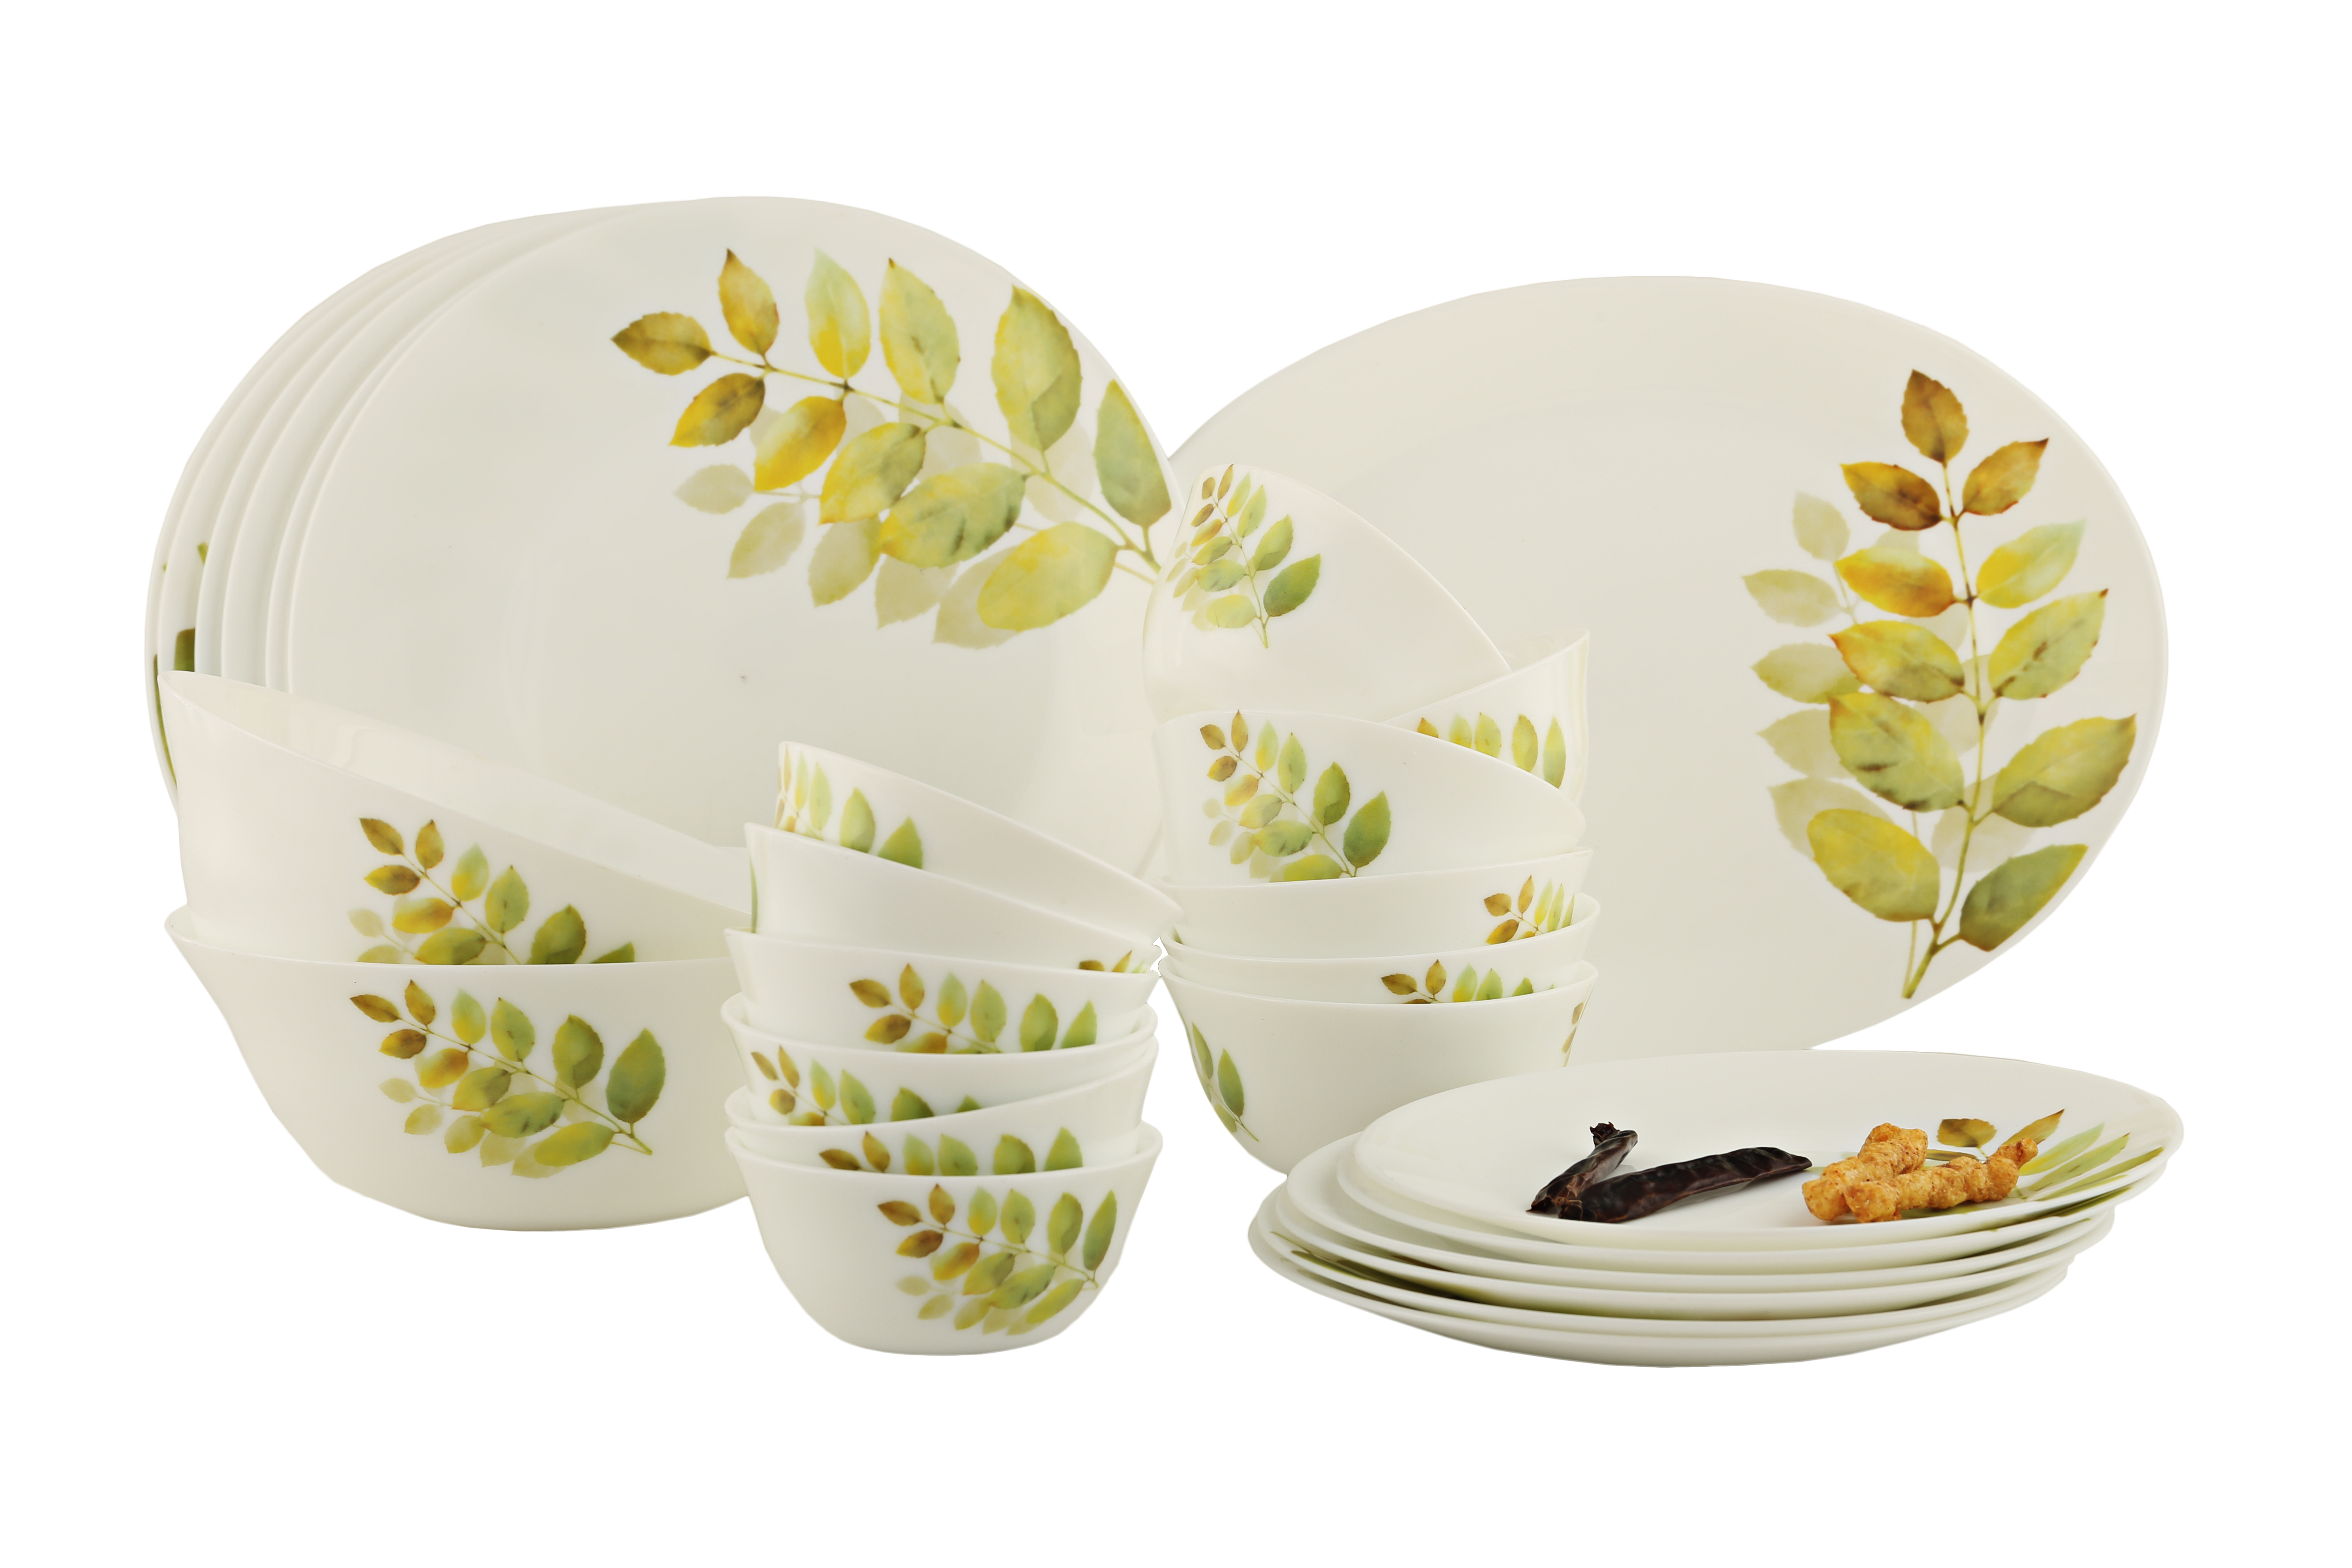 Diva Diva Autum Shadow Ivory Dinner Set 27 Pc Dinner Sets in Yellow Colour by Diva